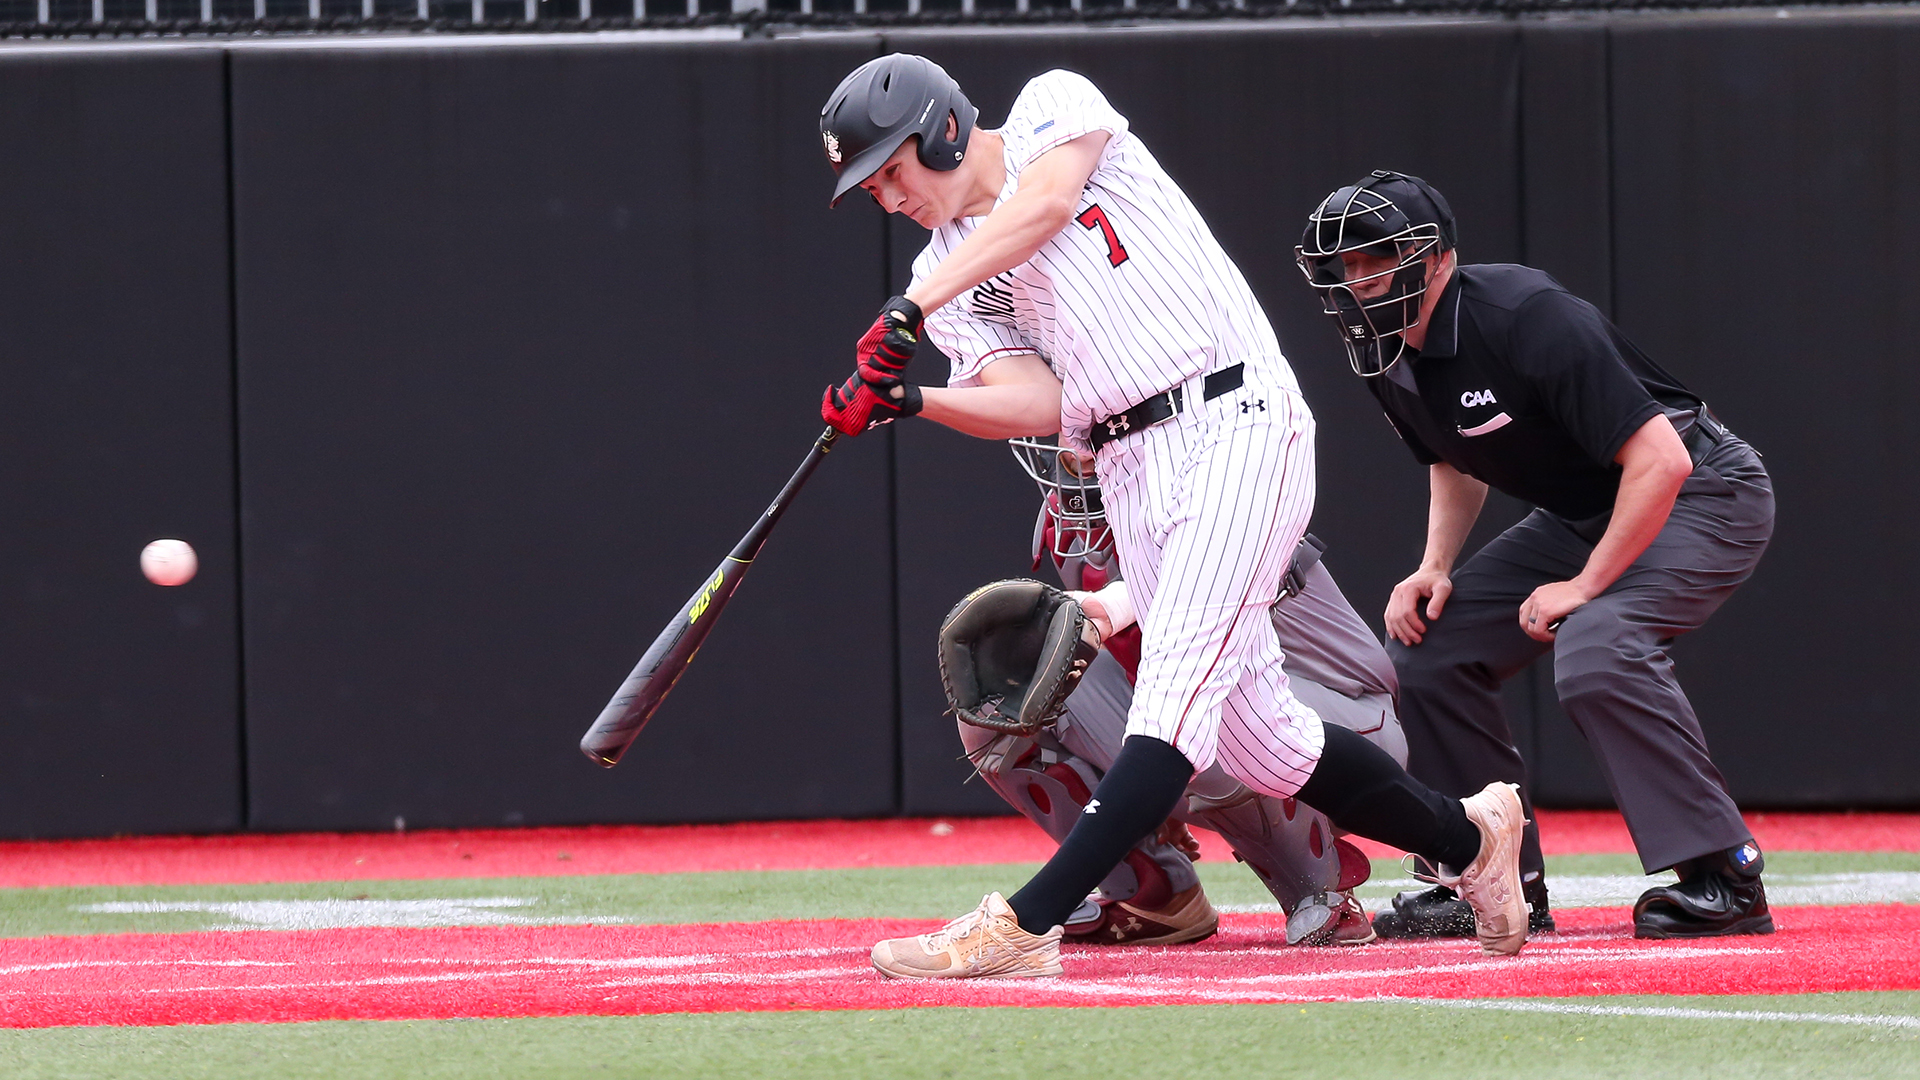 Ian Fair batting for the Northeastern Huskies.  Photo courtesy of Northeastern Athletics.